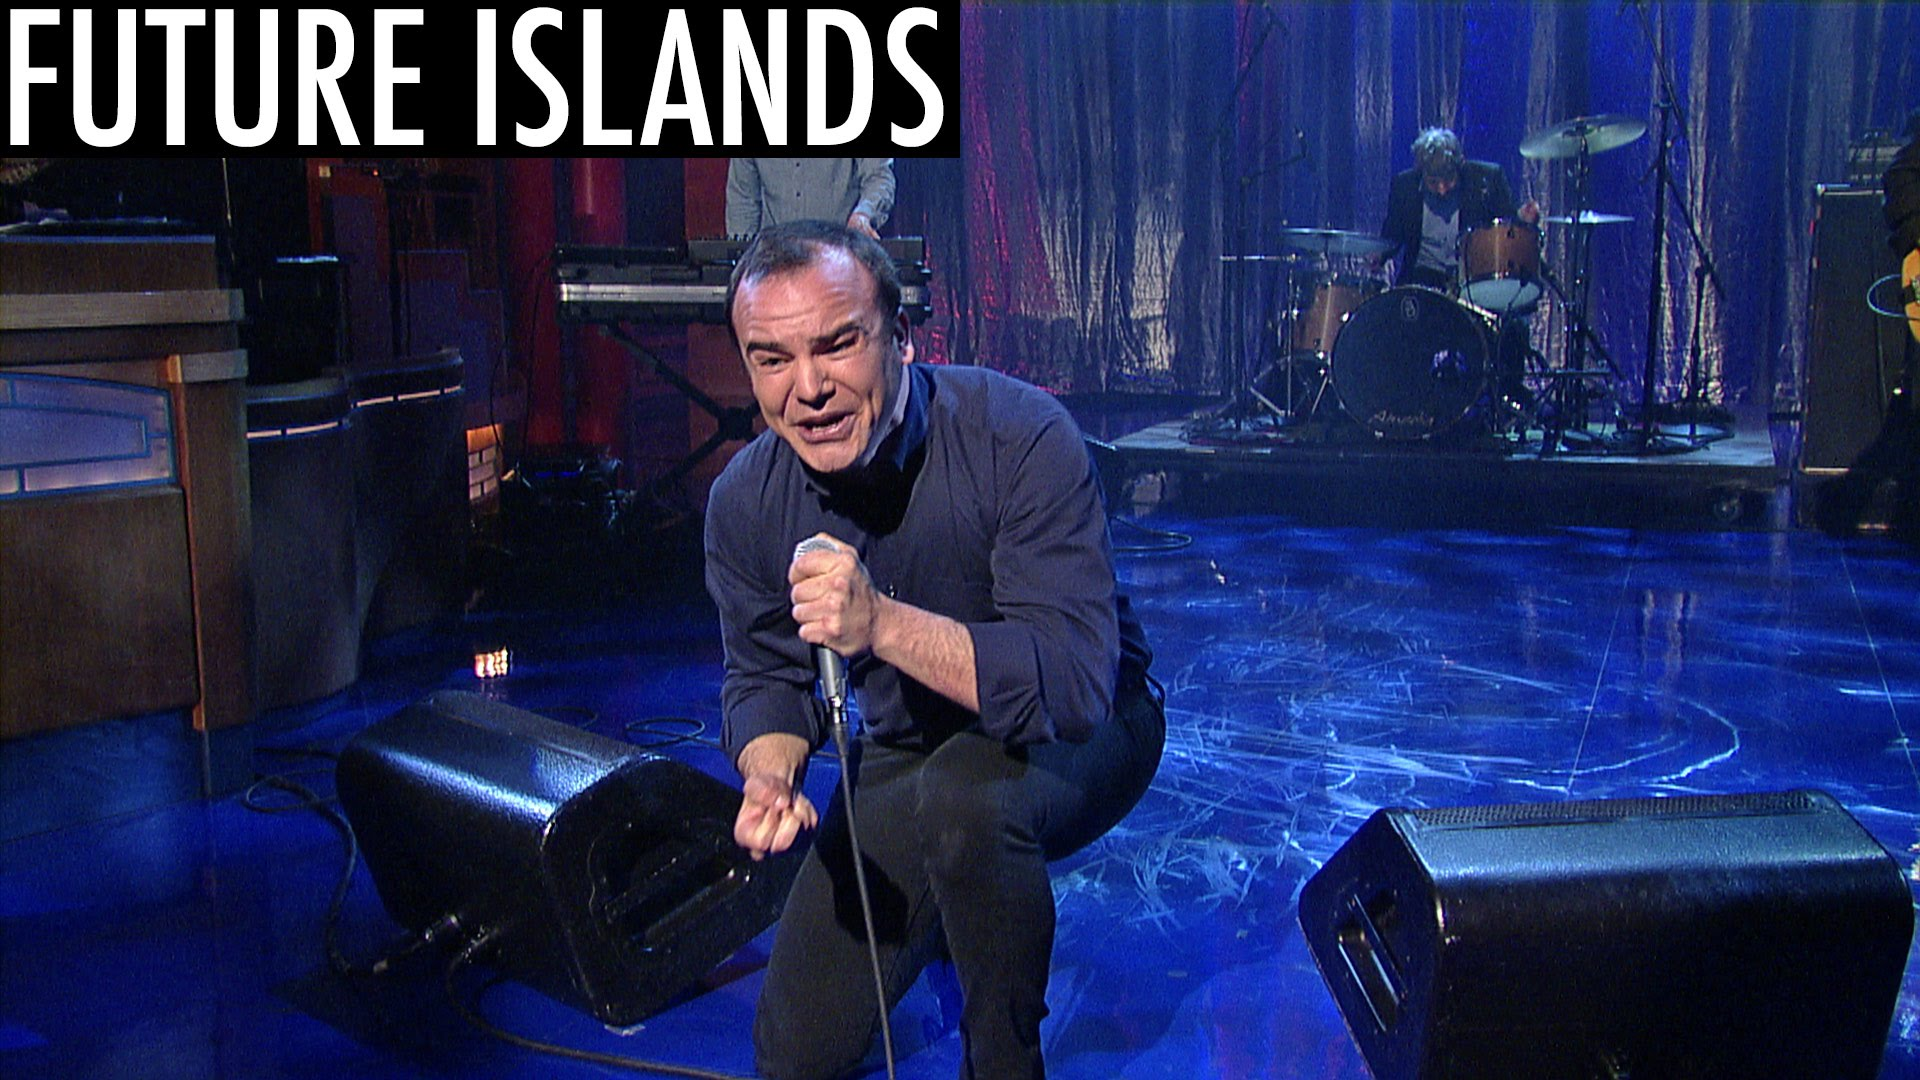 Future Islands return to Letterman, share new single 'The Chase'